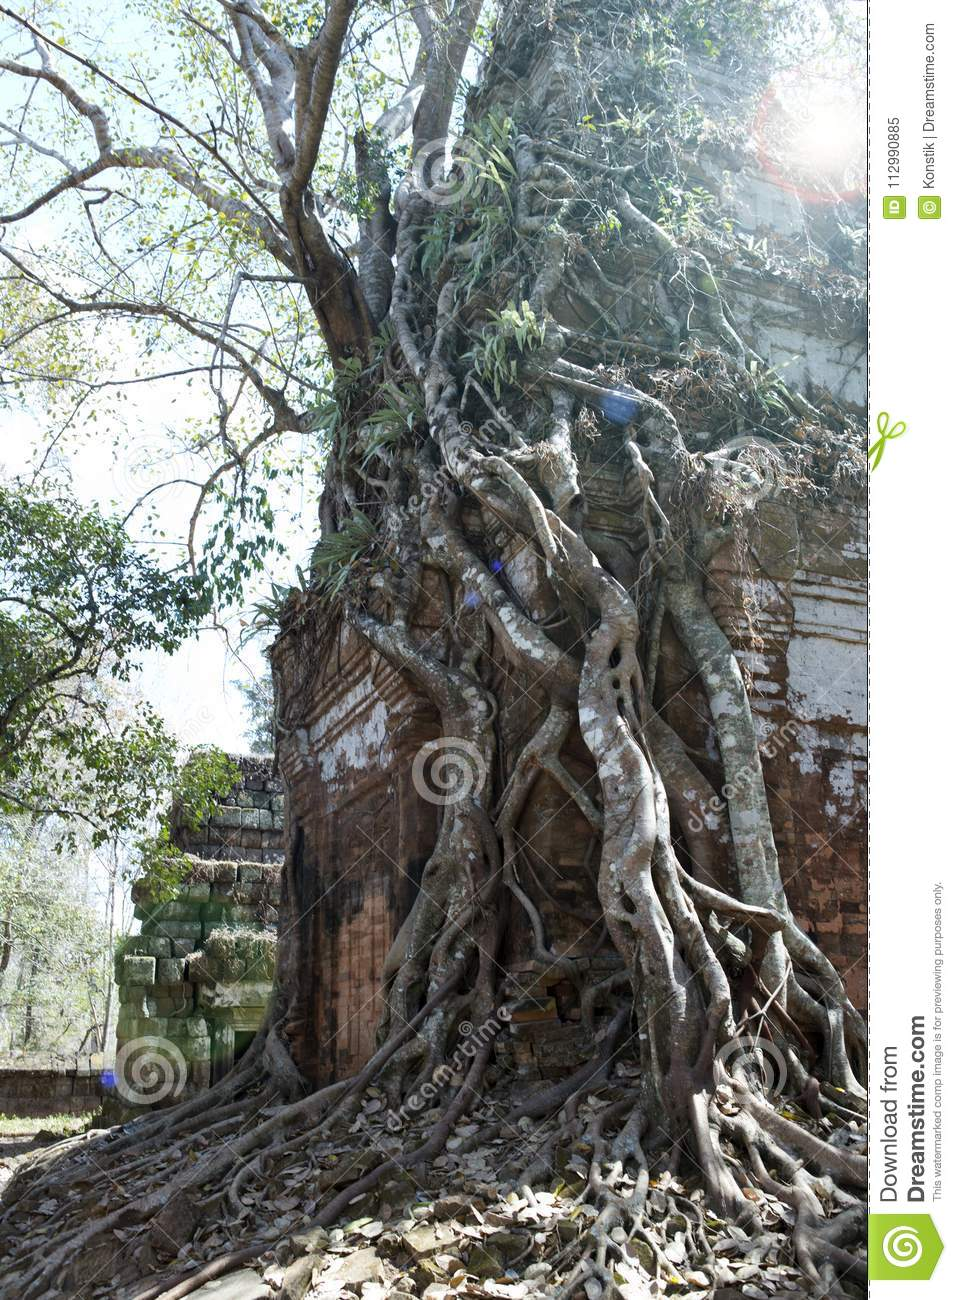 Destroyed covered with roots of trees temple Prasat Chrap in the Koh Ker temple complex, Siem Reap, Cambodia